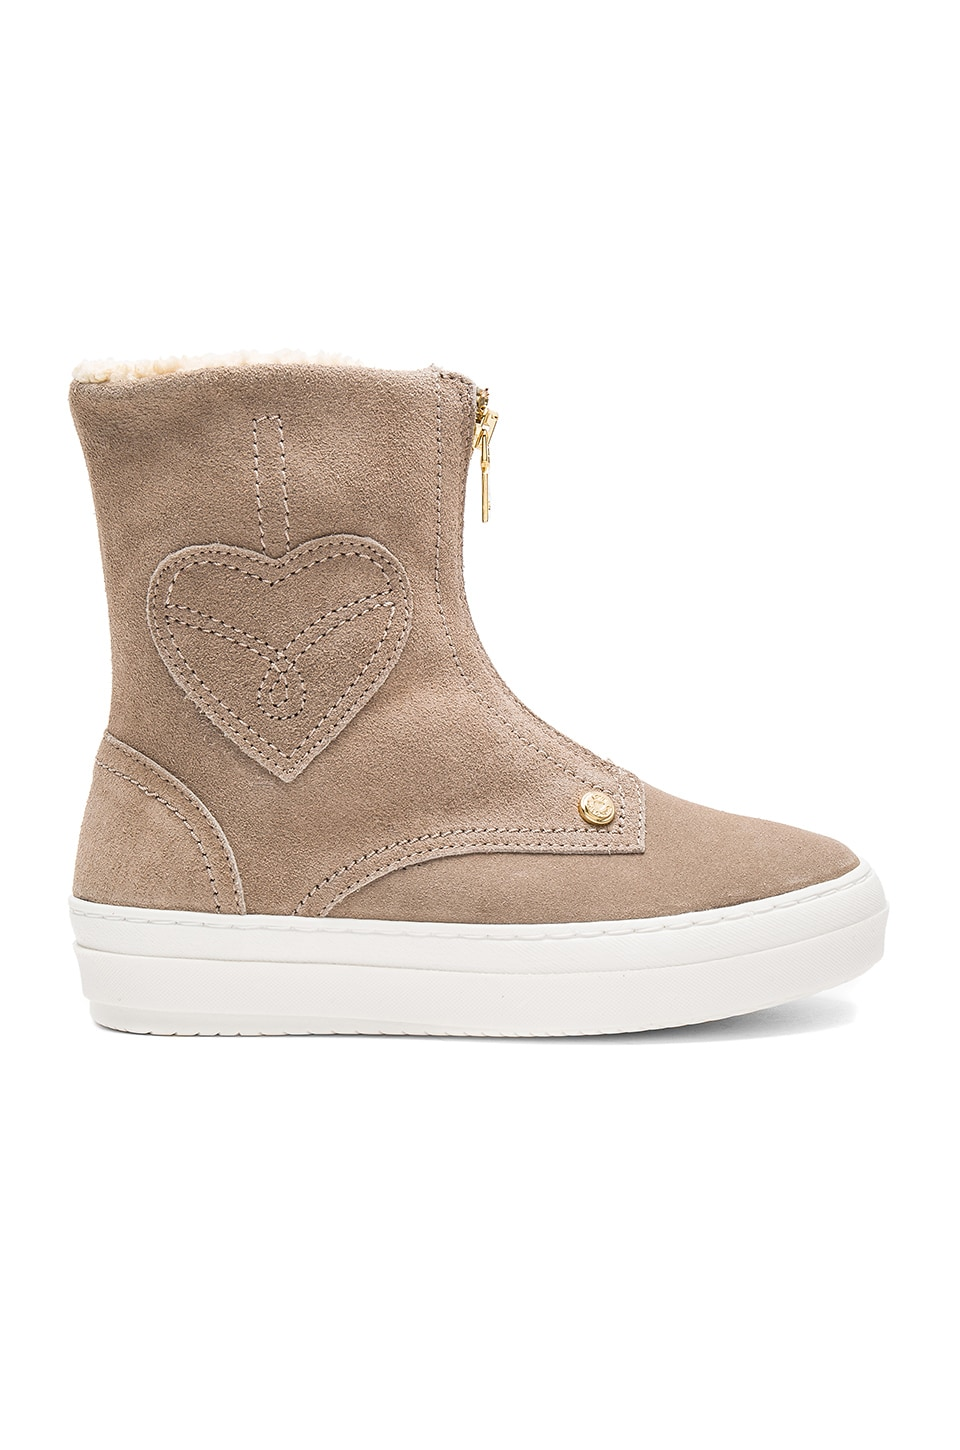 Ankle Boot with Sherpa Lining by Love Moschino